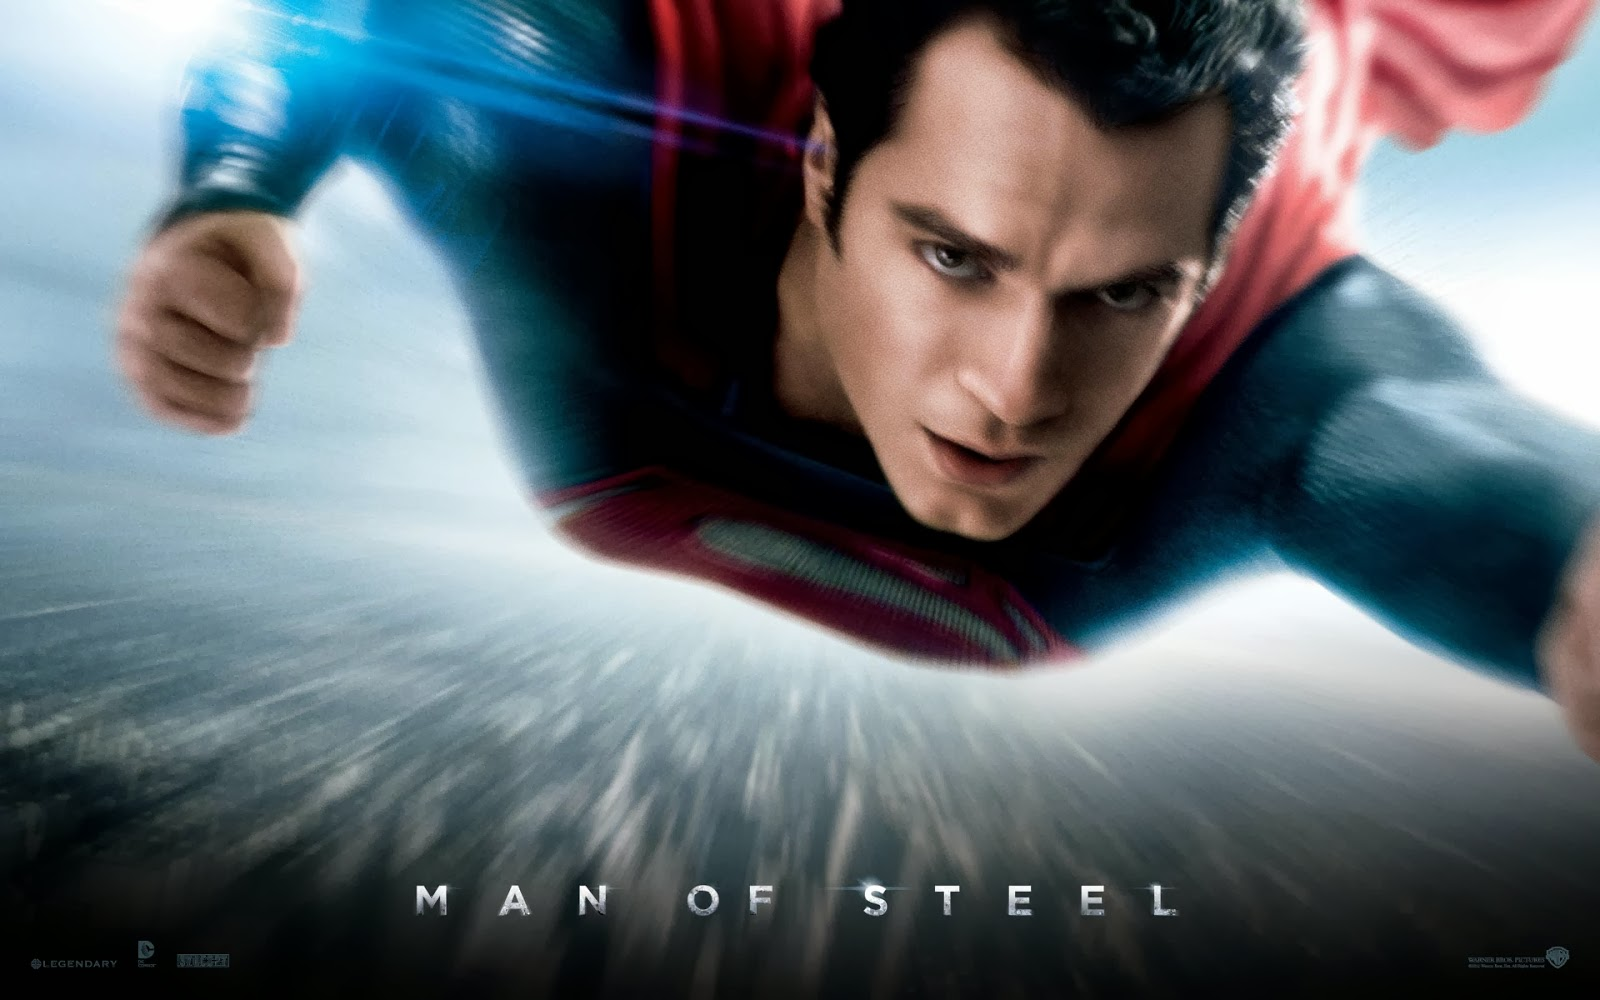 superman film, why man of steel sucked, man of steel, problems with man of steel, man of steel reviews